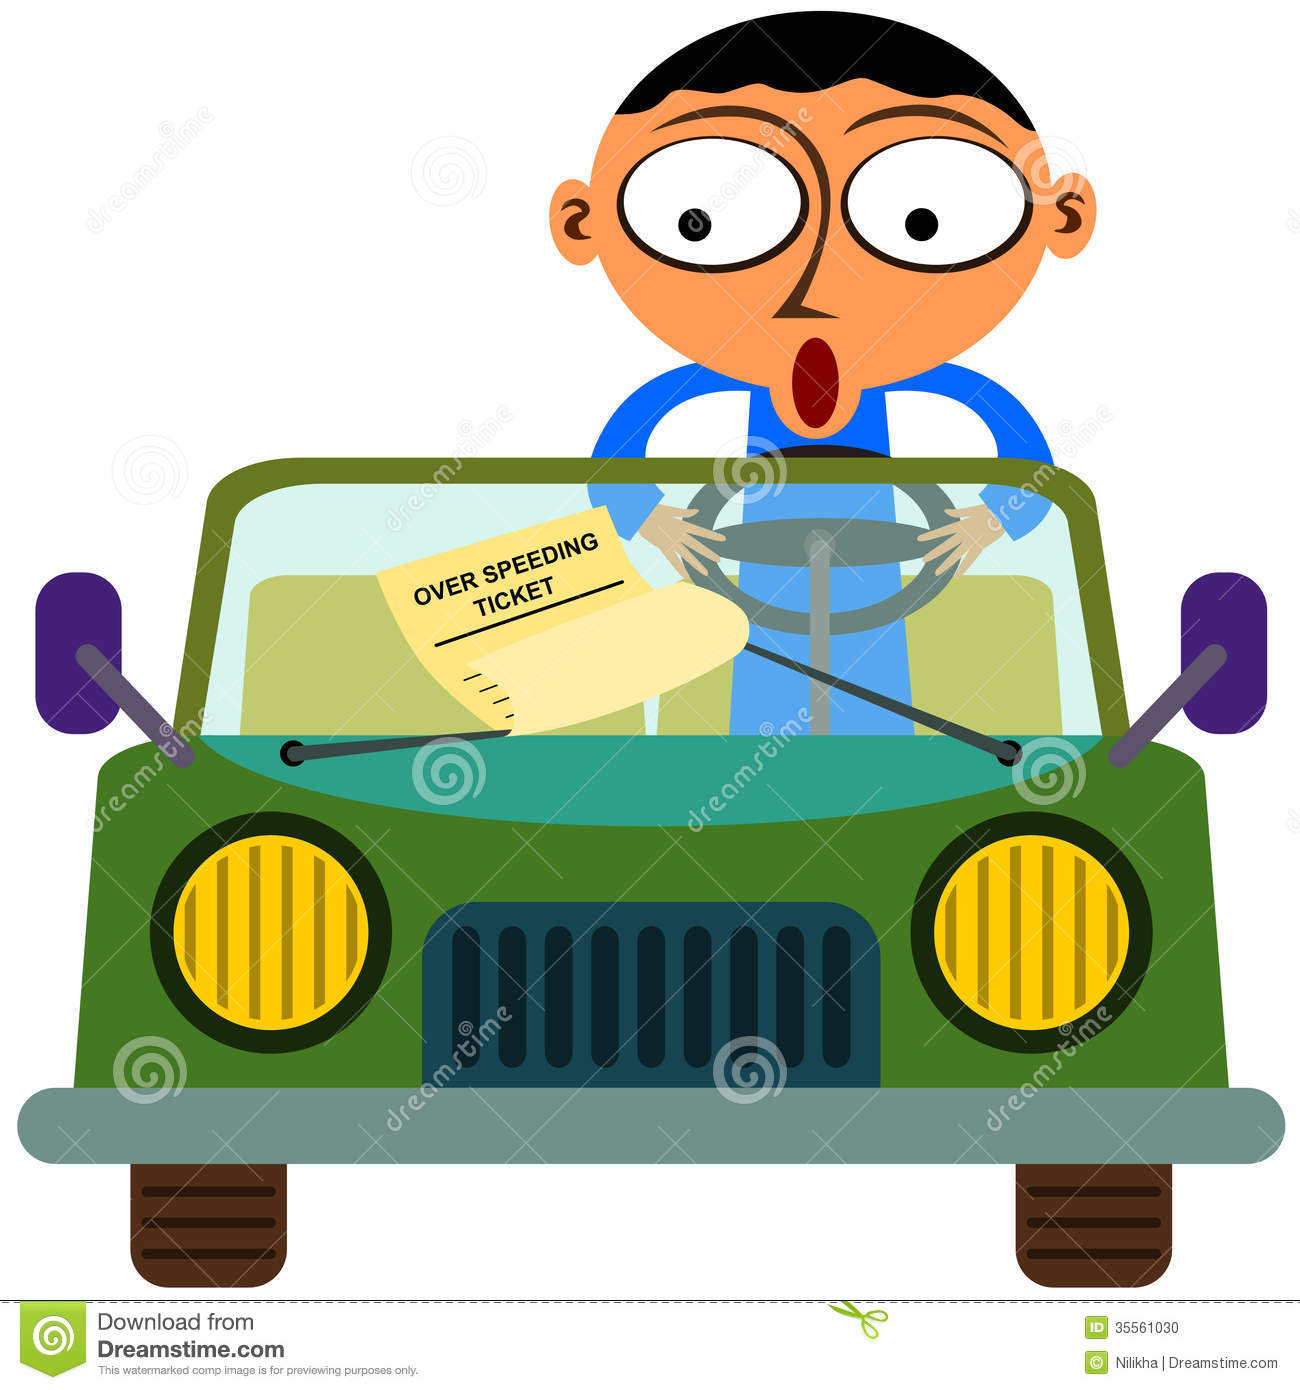 Speeding Ticket App >> A Traffic Ticket Stock Photo - Image: 35561030